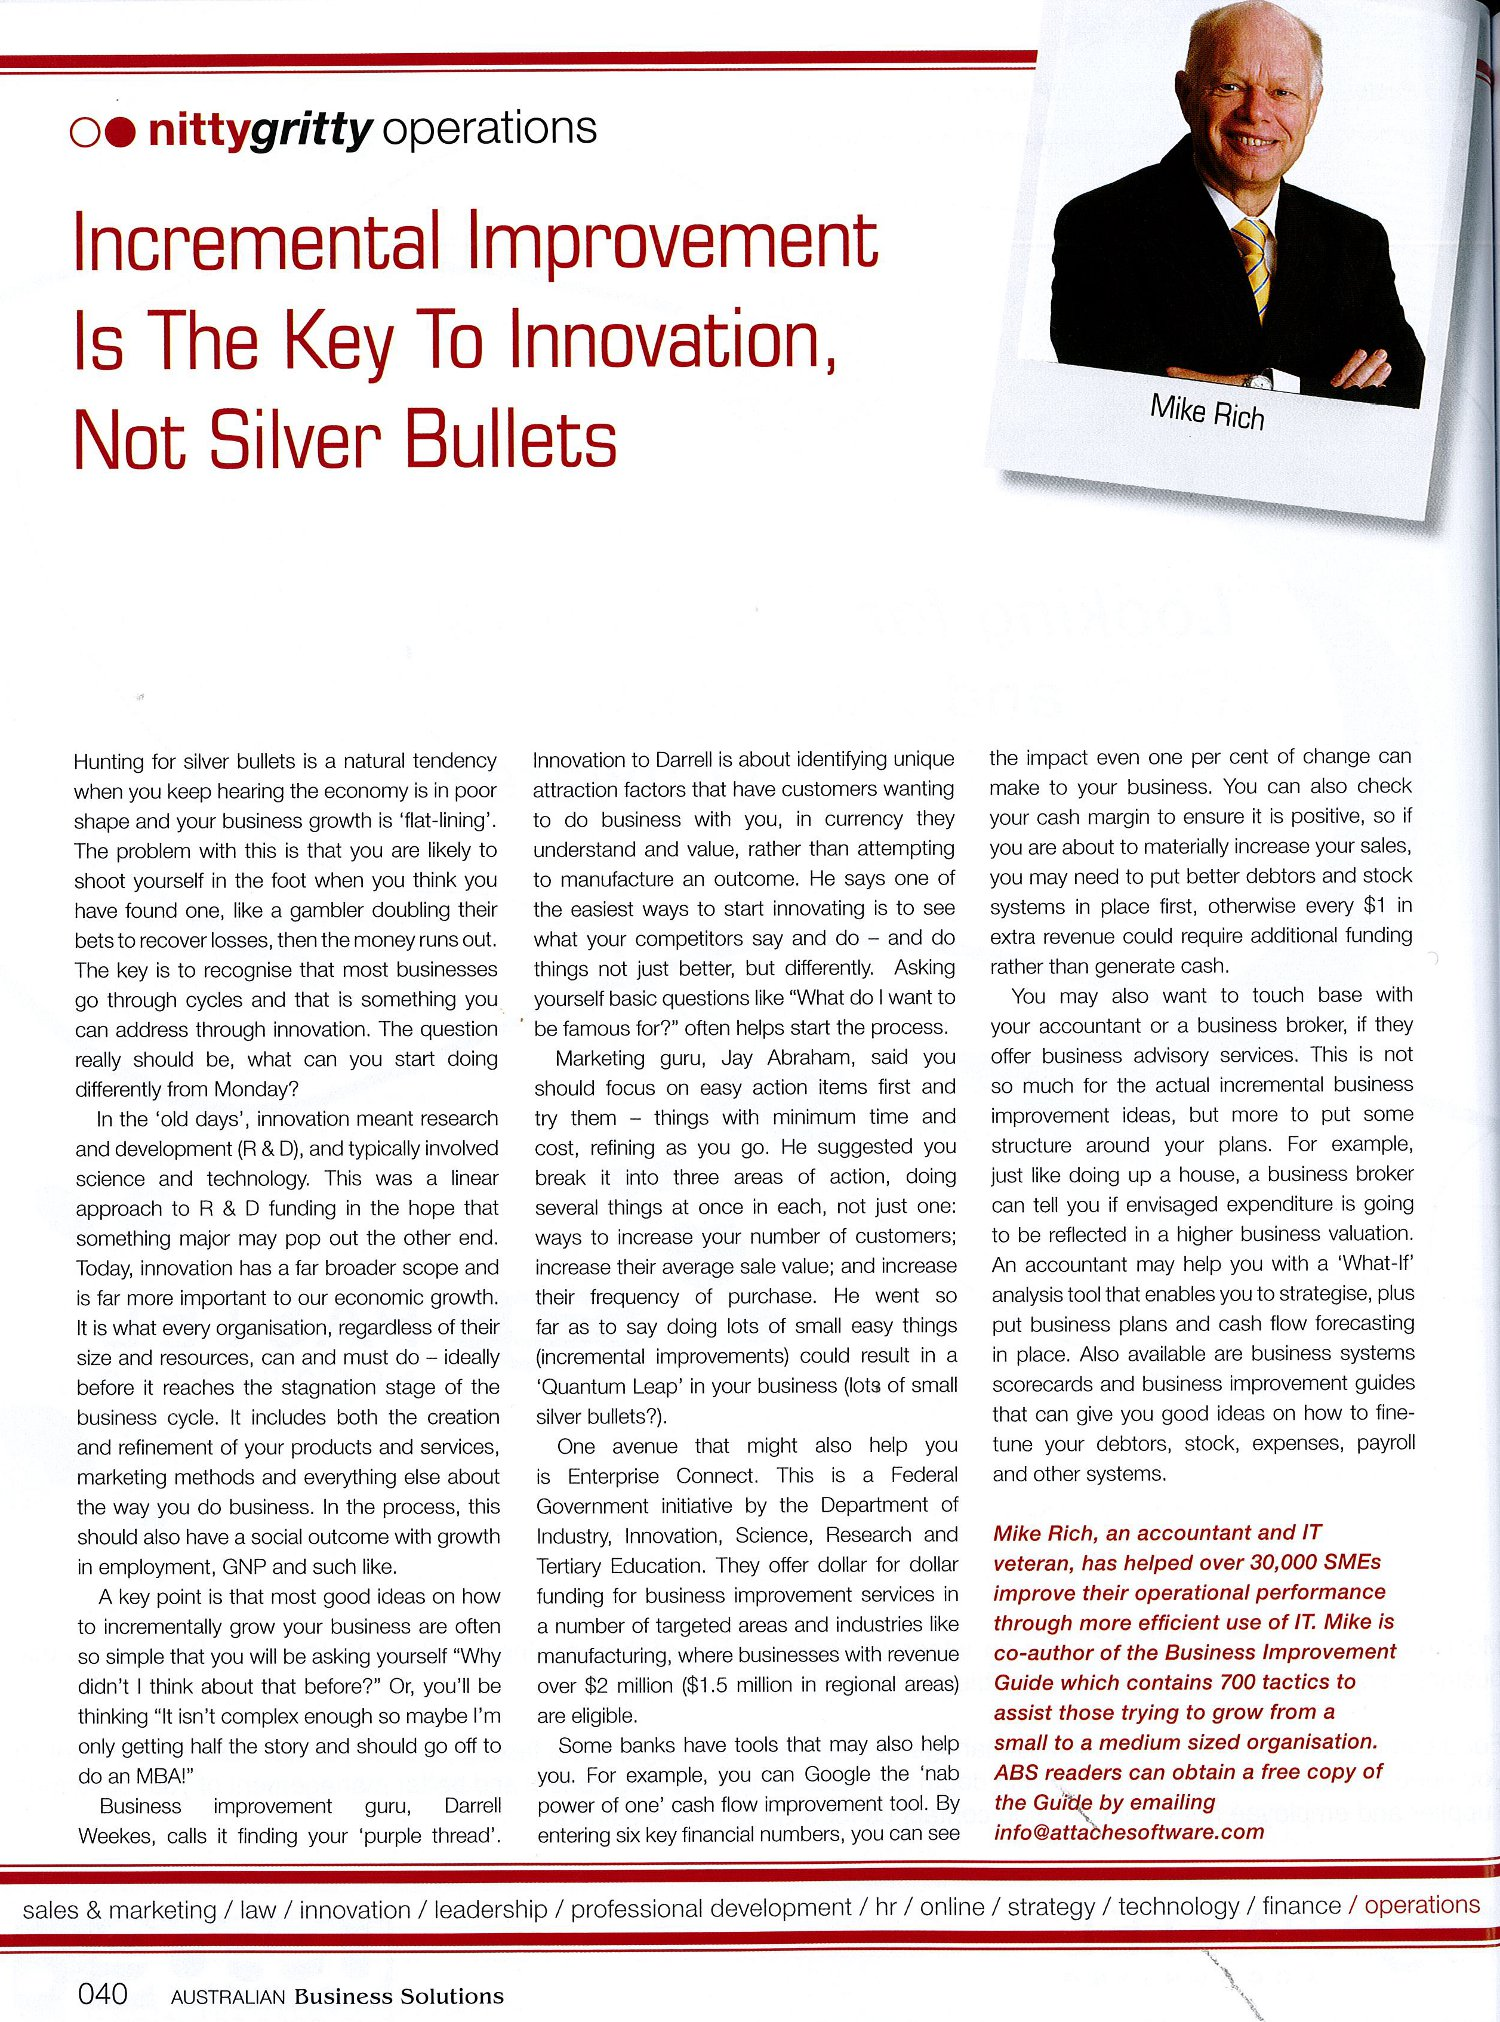 Innovation key image